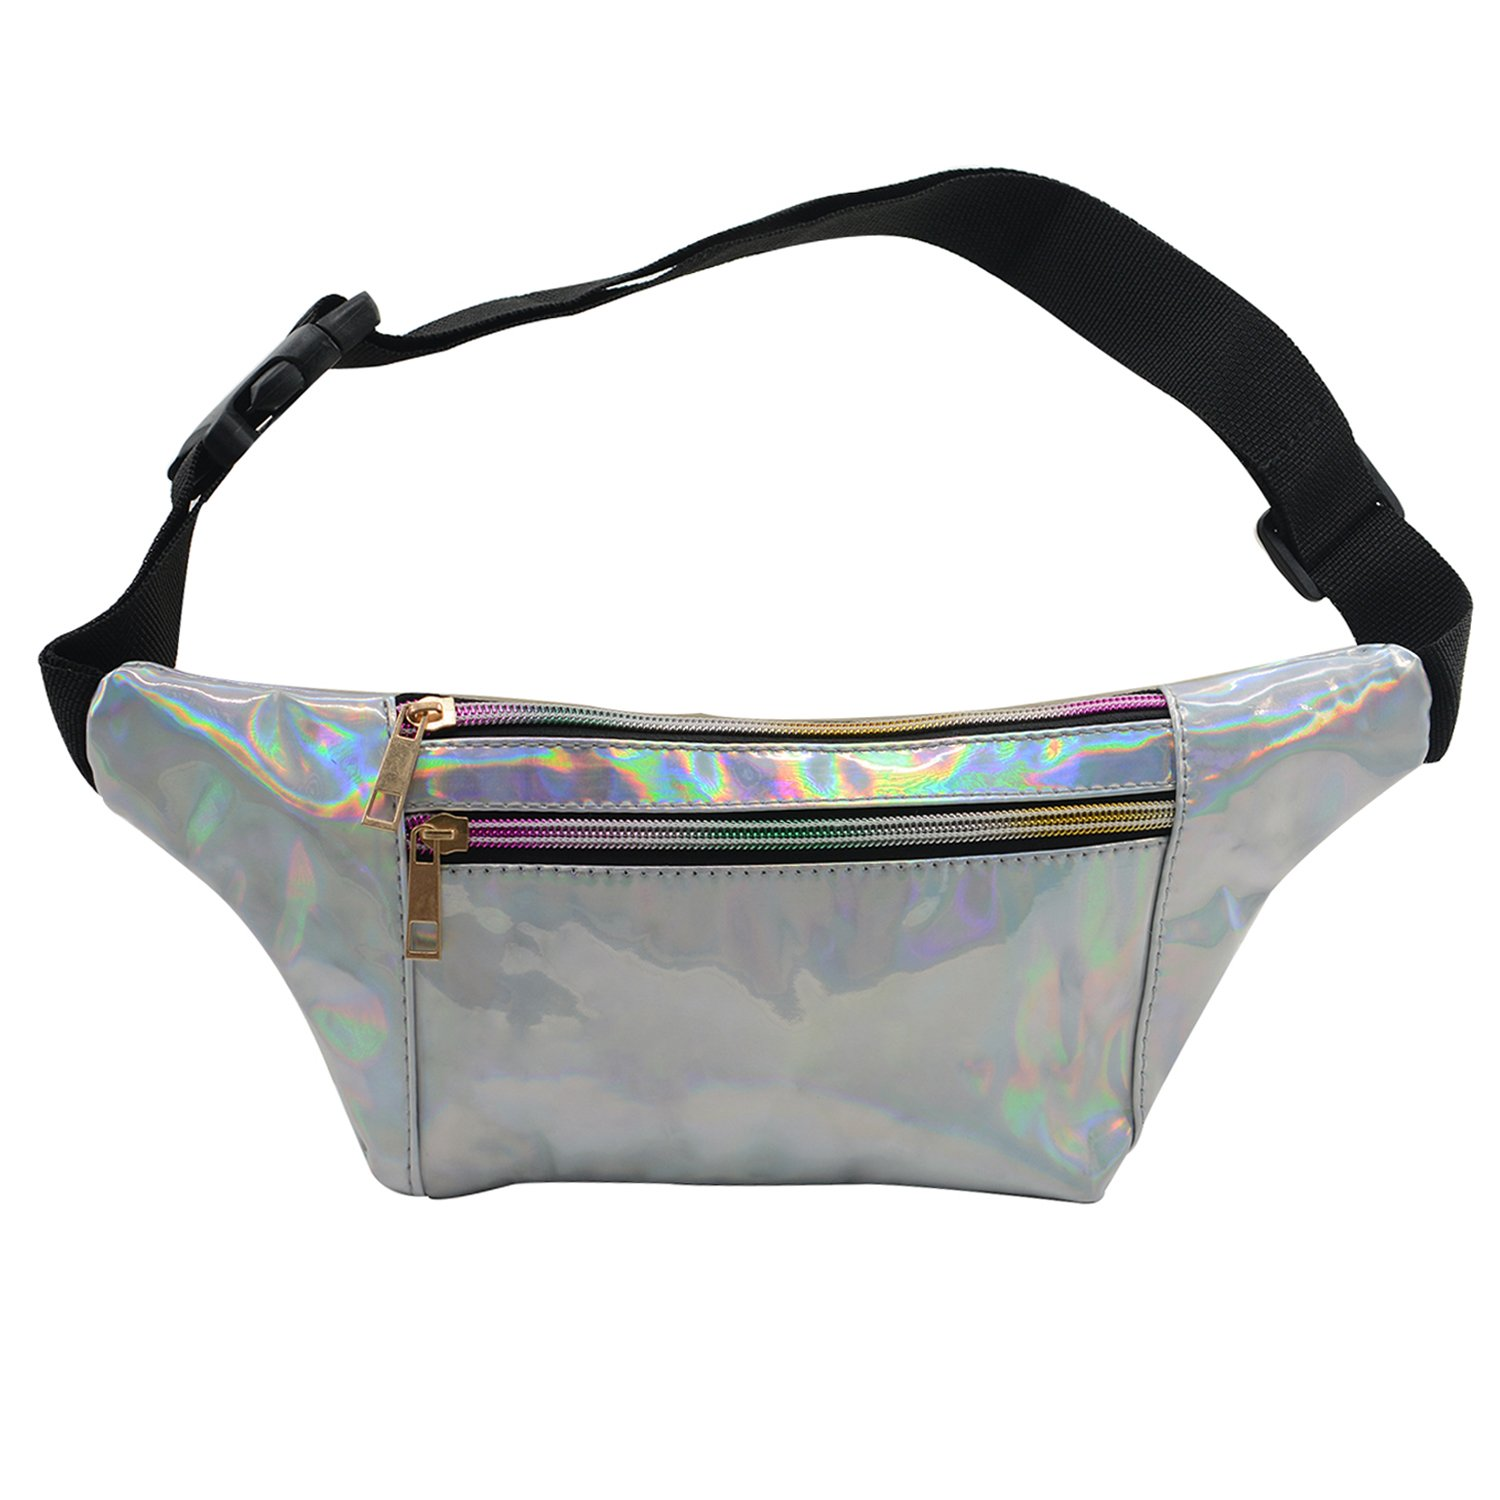 84e045962488 Rave Fanny Pack for Women Girls Waterproof Waist Pack Hip Bum Bag PU  Leather Holographic Belt Pouch for Party, Festival, Rave, Hiking, Travel  Silver Small